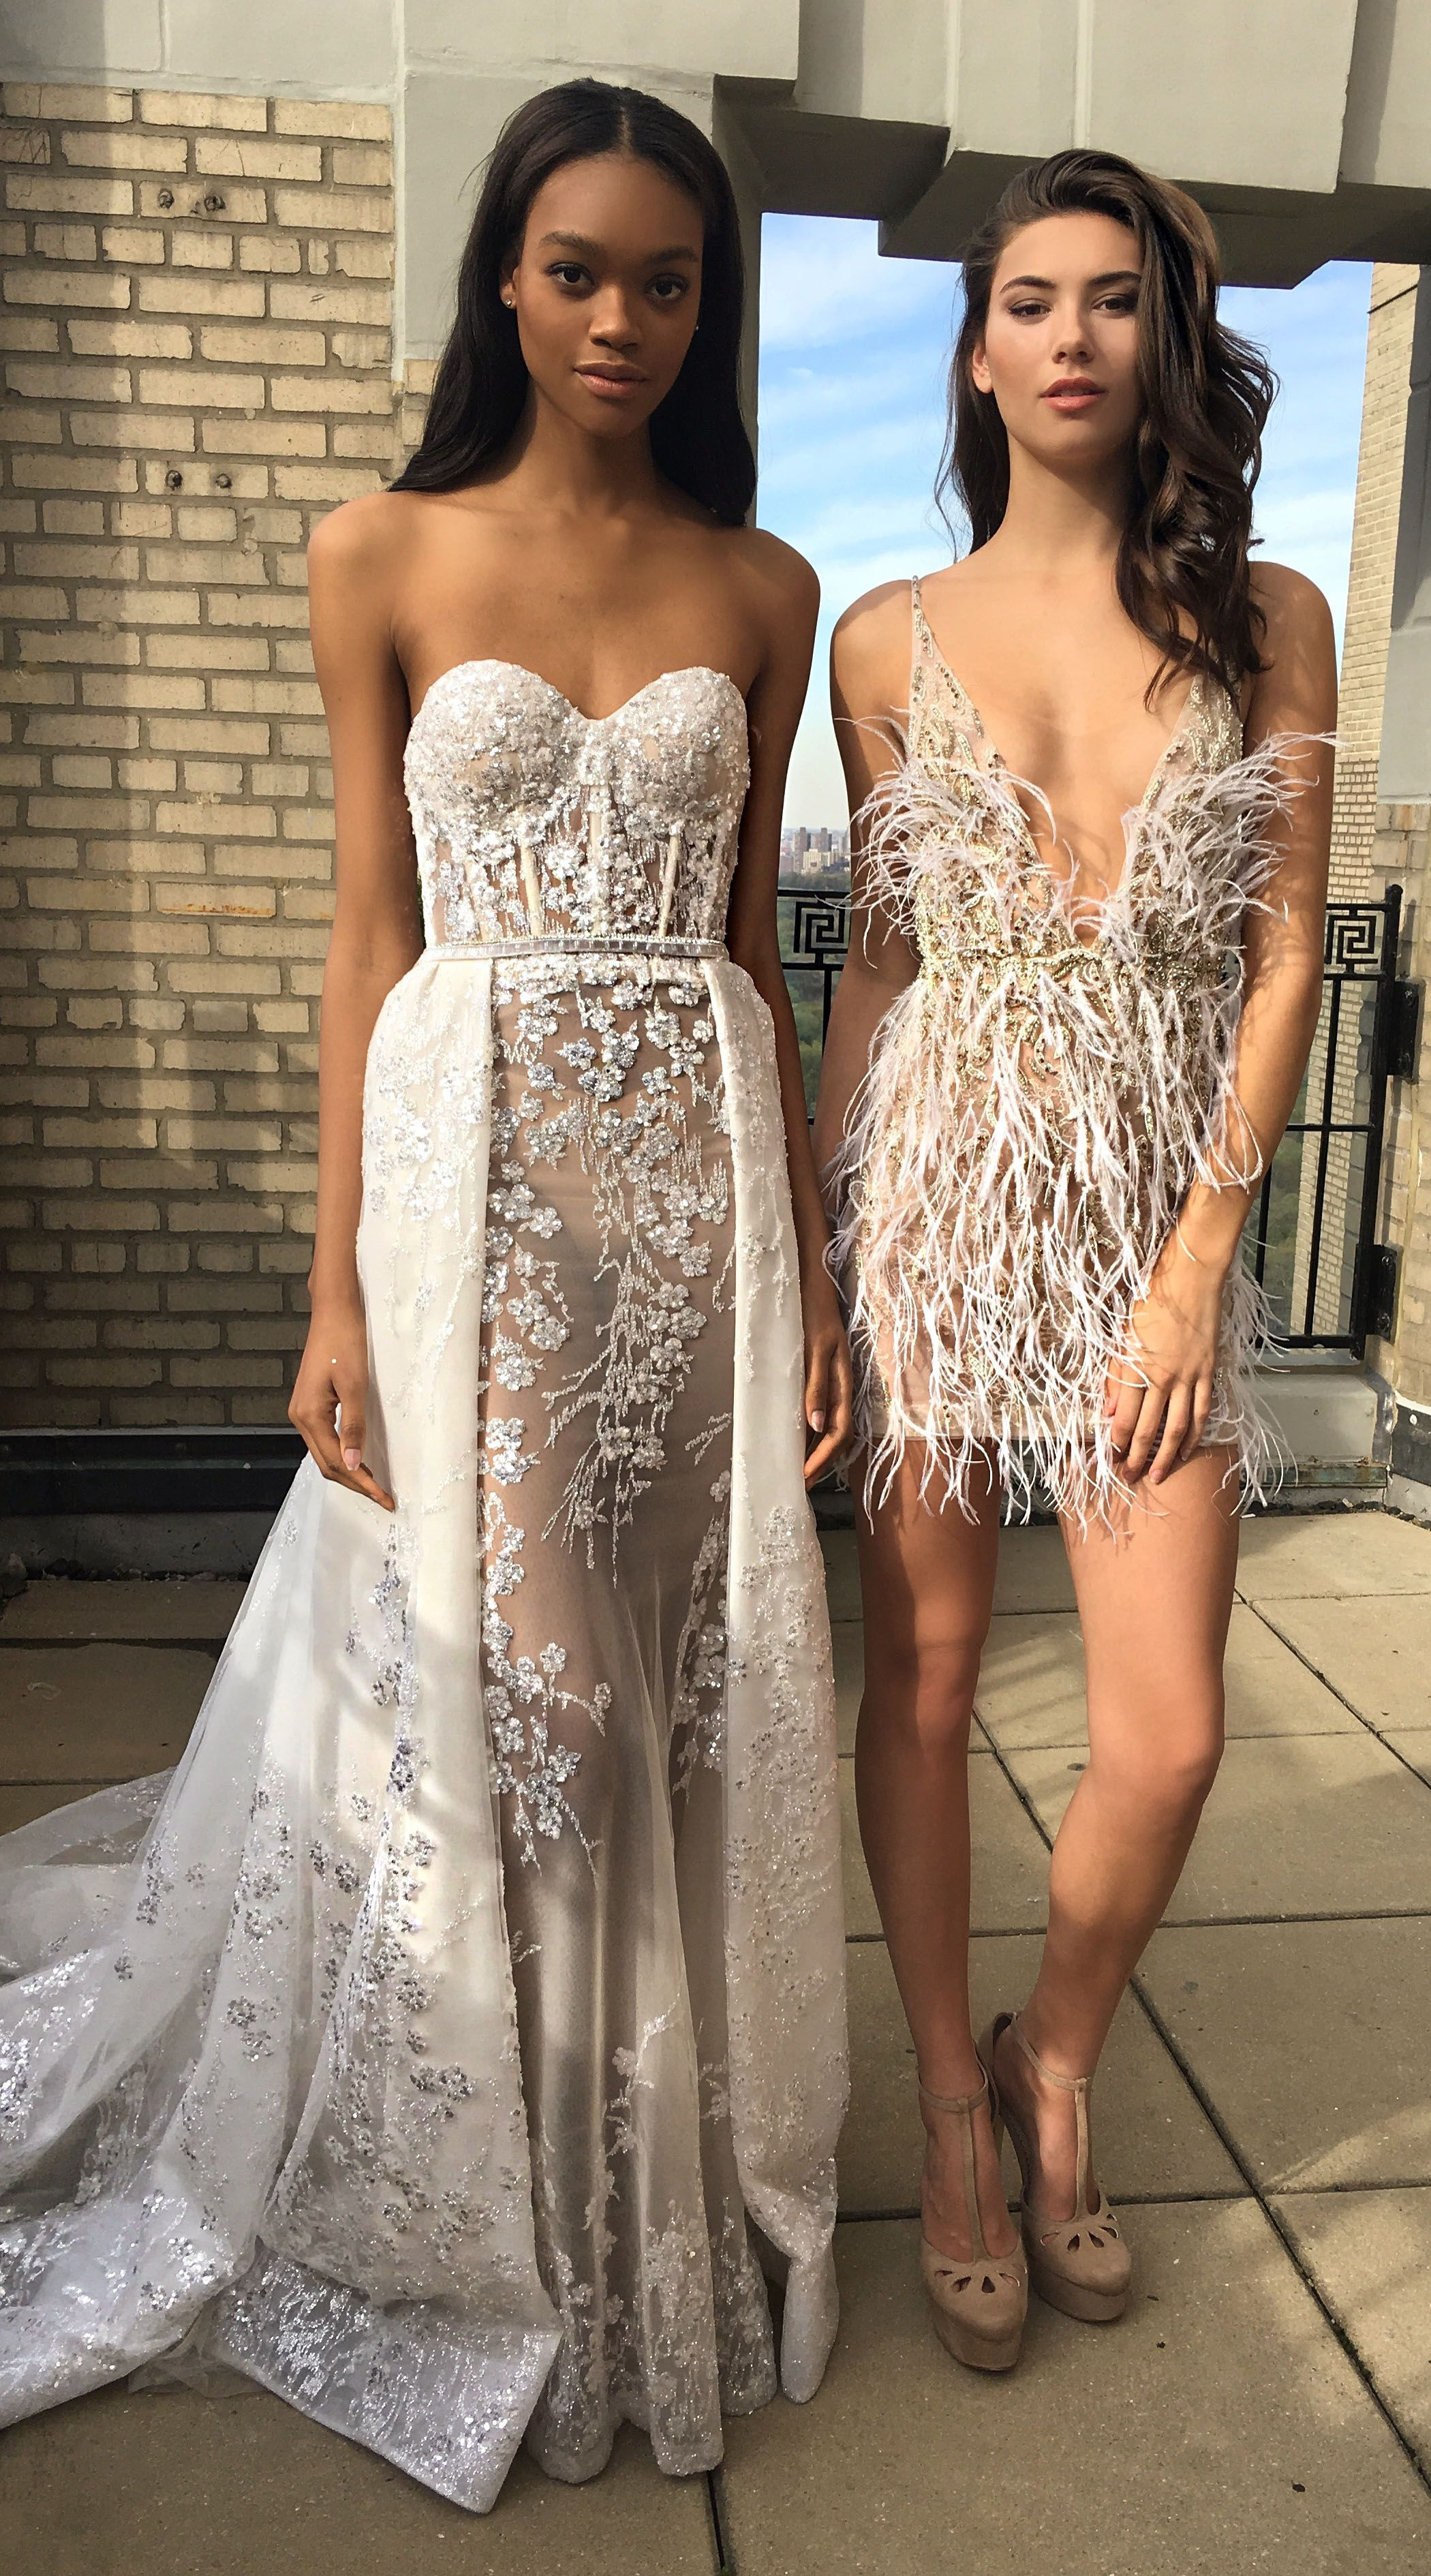 This long bertabridal gown is so opulent and that short dress is